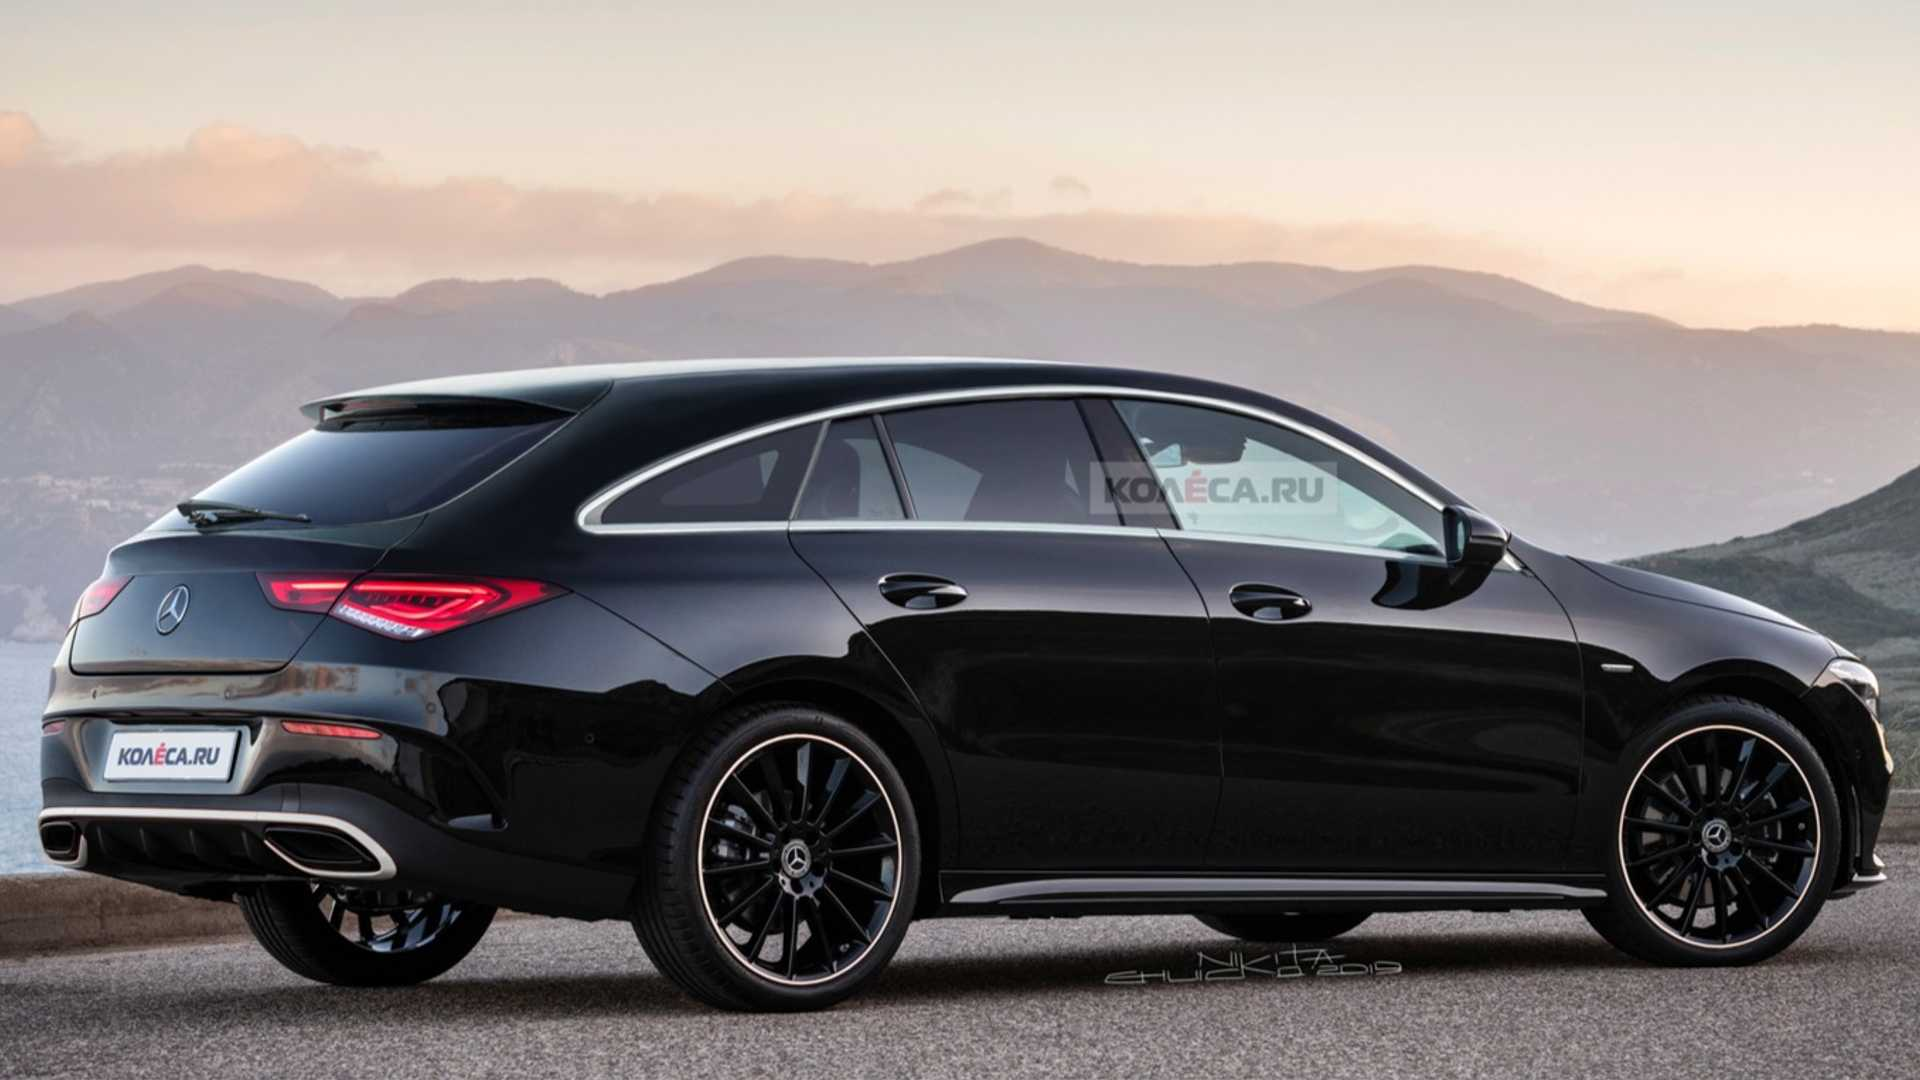 2020 Mercedes CLA Shooting Brake Rendered As Stylish Wagon